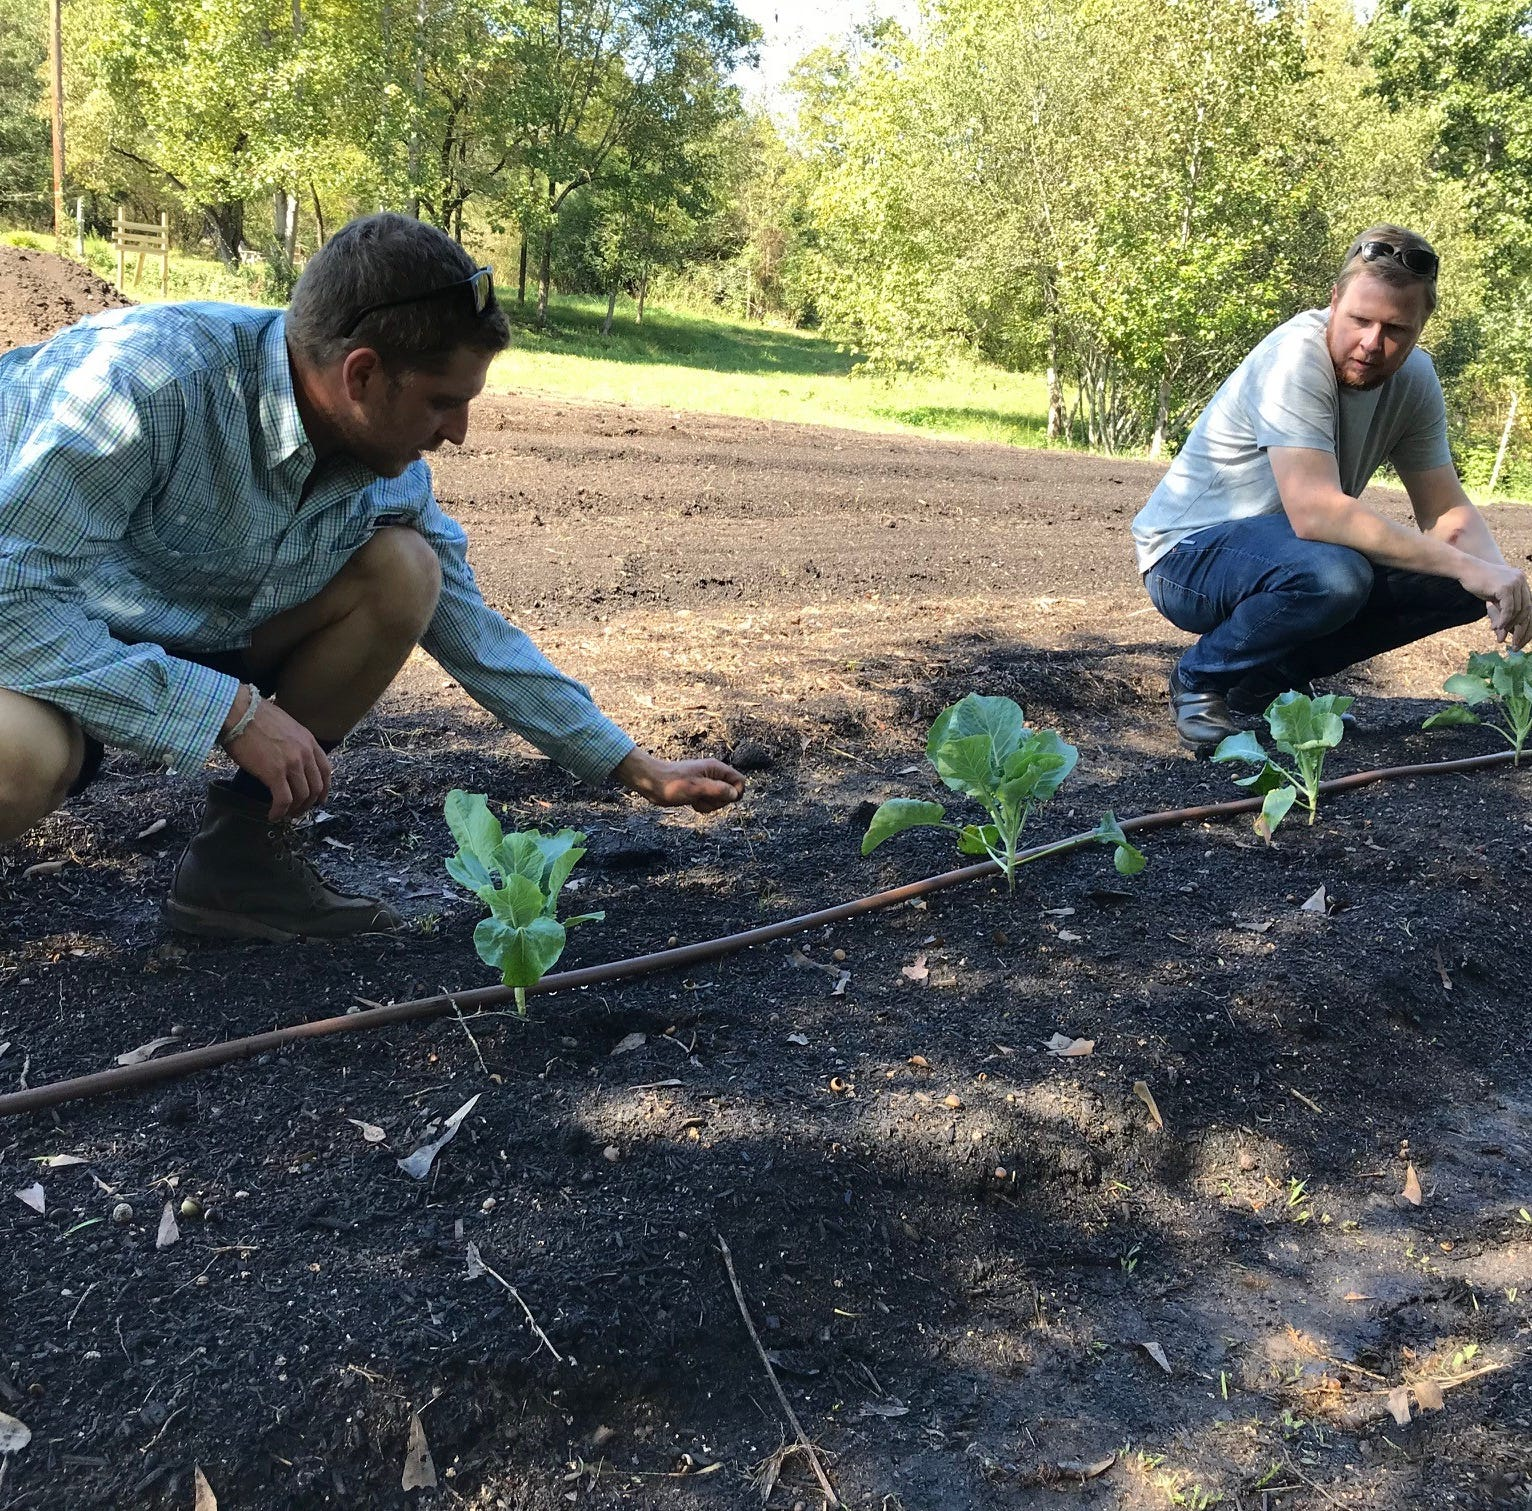 Anchorage chef and a farmer start a farm in a new approach to local food in Greenville